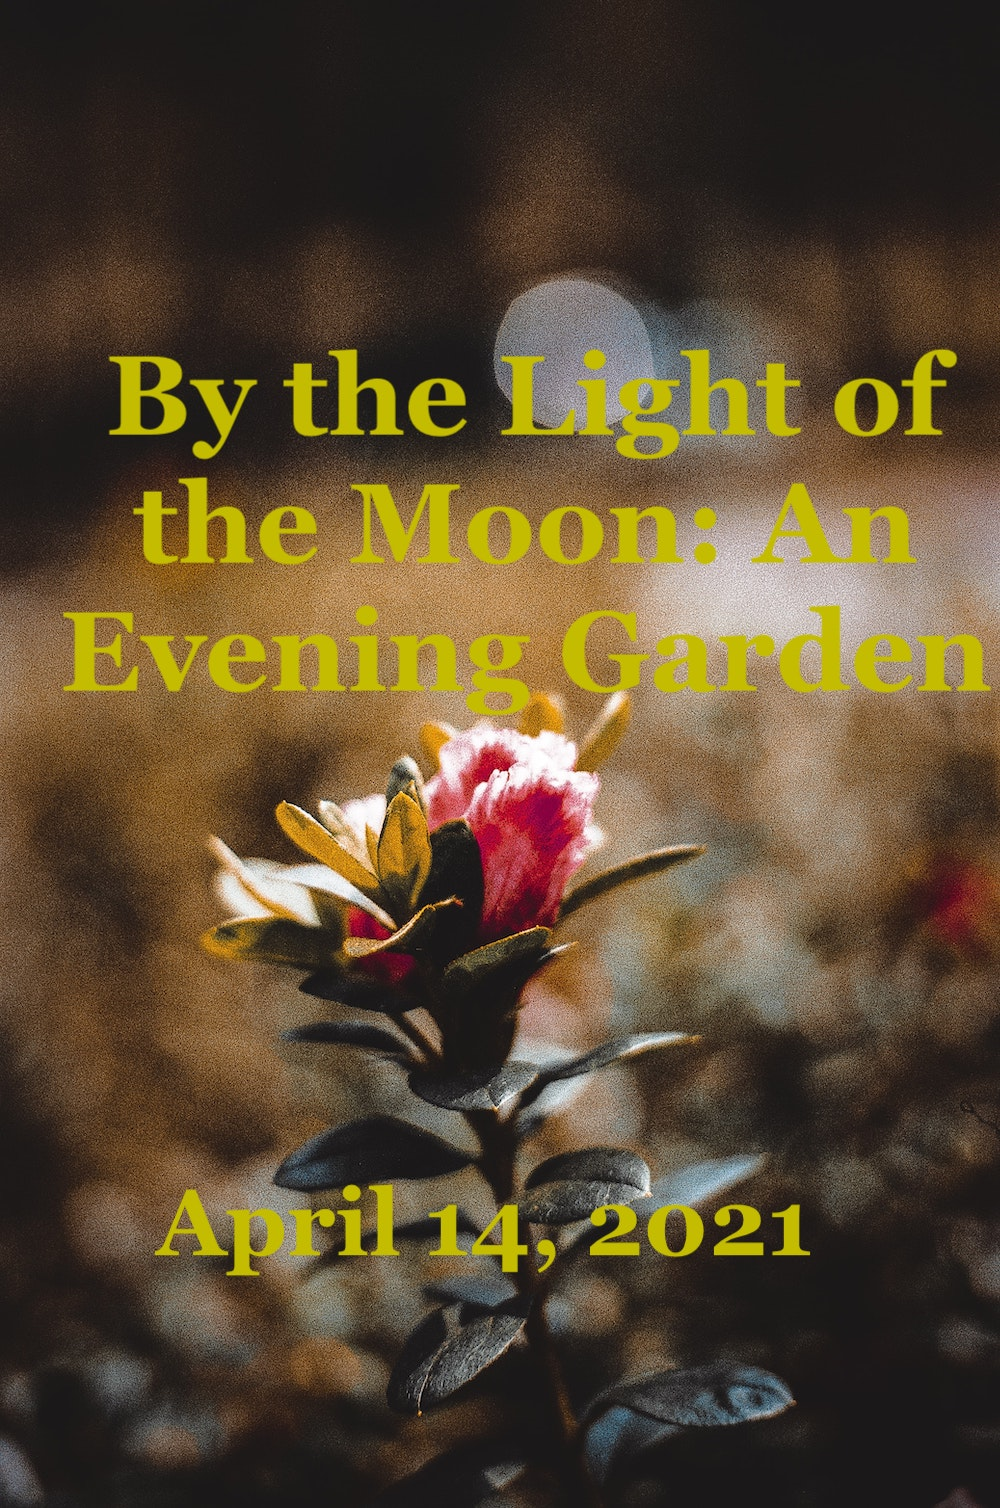 By the Light of the Moon: An Evening Garden, Heather Prince